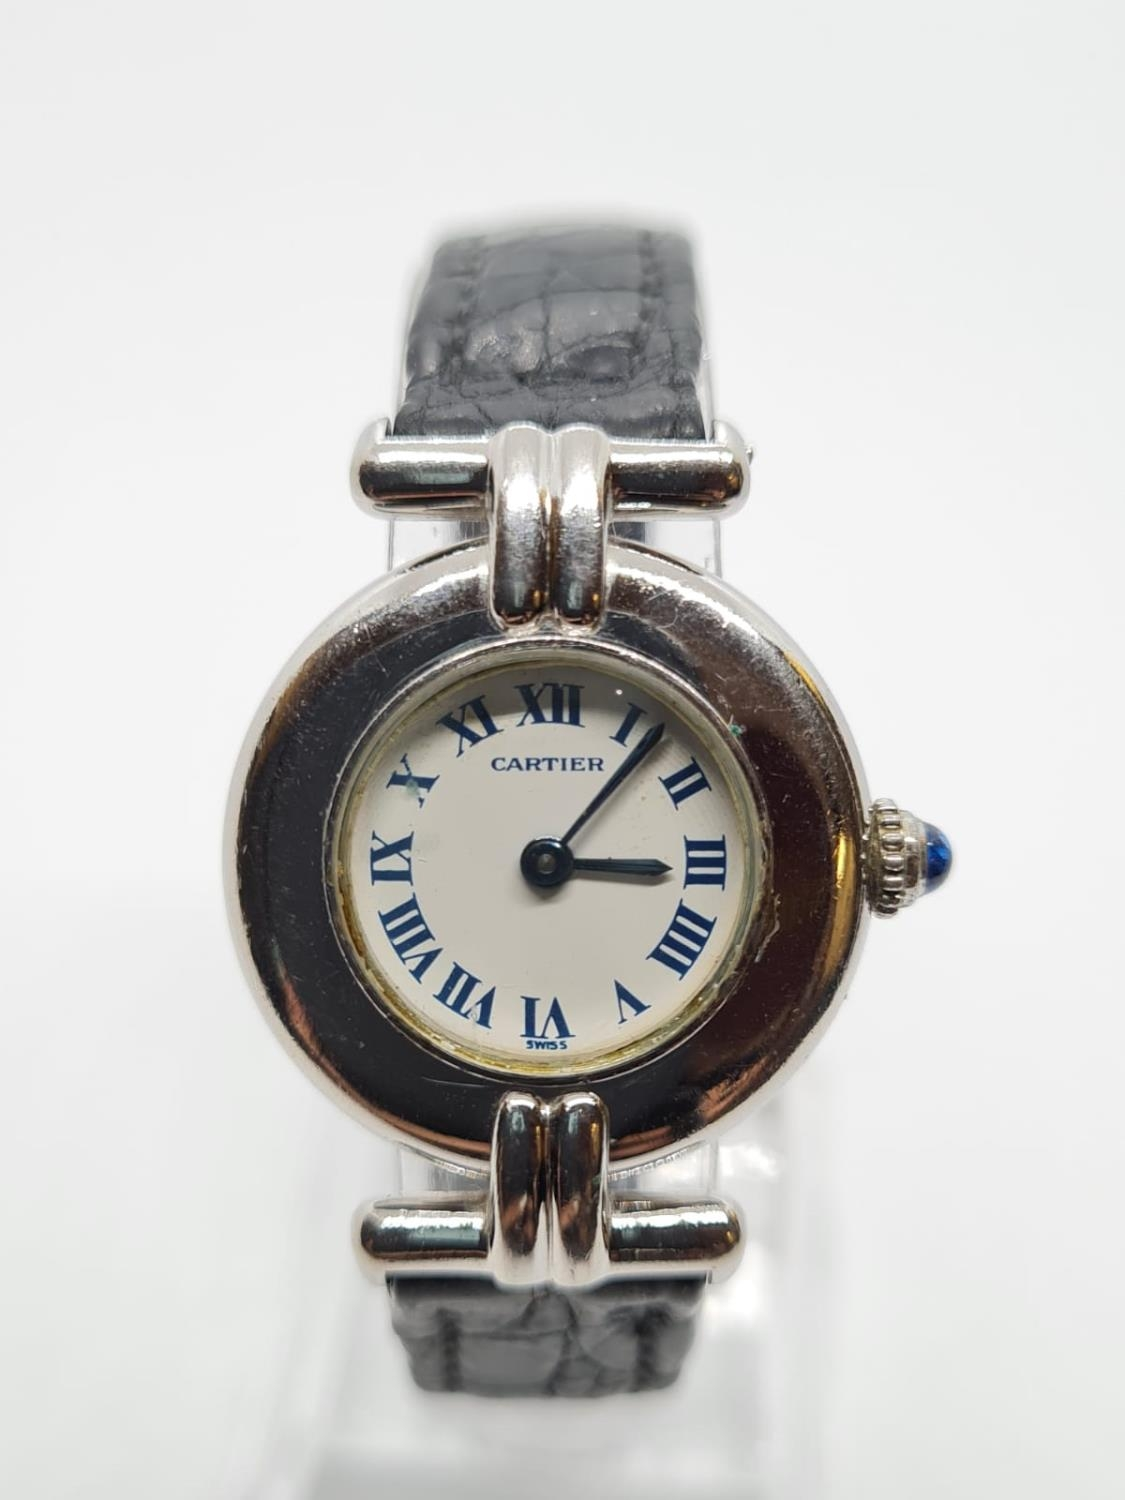 Vintage Cartier Ladies quartz WATCH with round face and Roman numerals. set in 925 Silver with